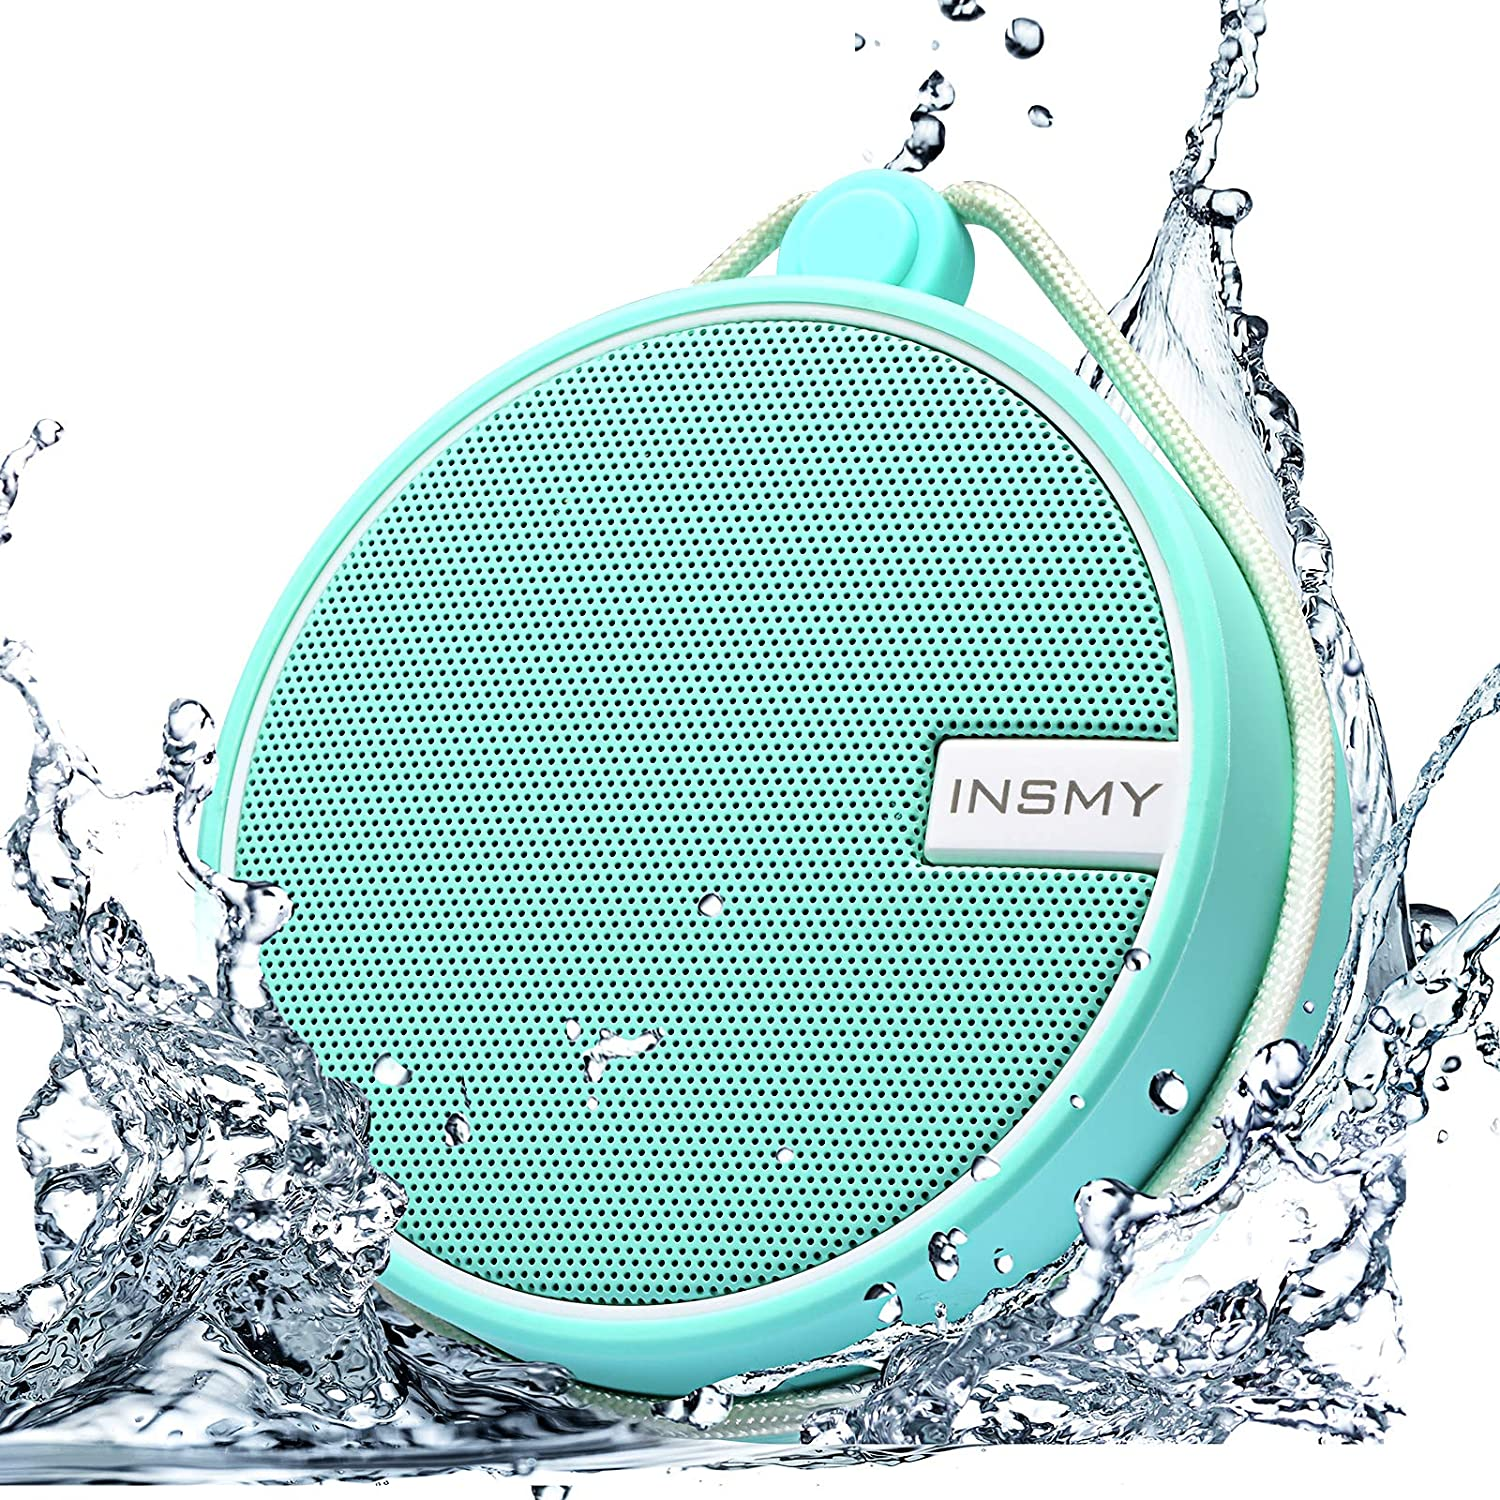 INSMY Portable IPX7 Waterproof Bluetooth Speaker, Wireless Outdoor Speaker Shower Speaker, with HD Sound, Support TF Card, Suction Cup, 12H Playtime, for Kayaking, Boating, Hiking (Mint)